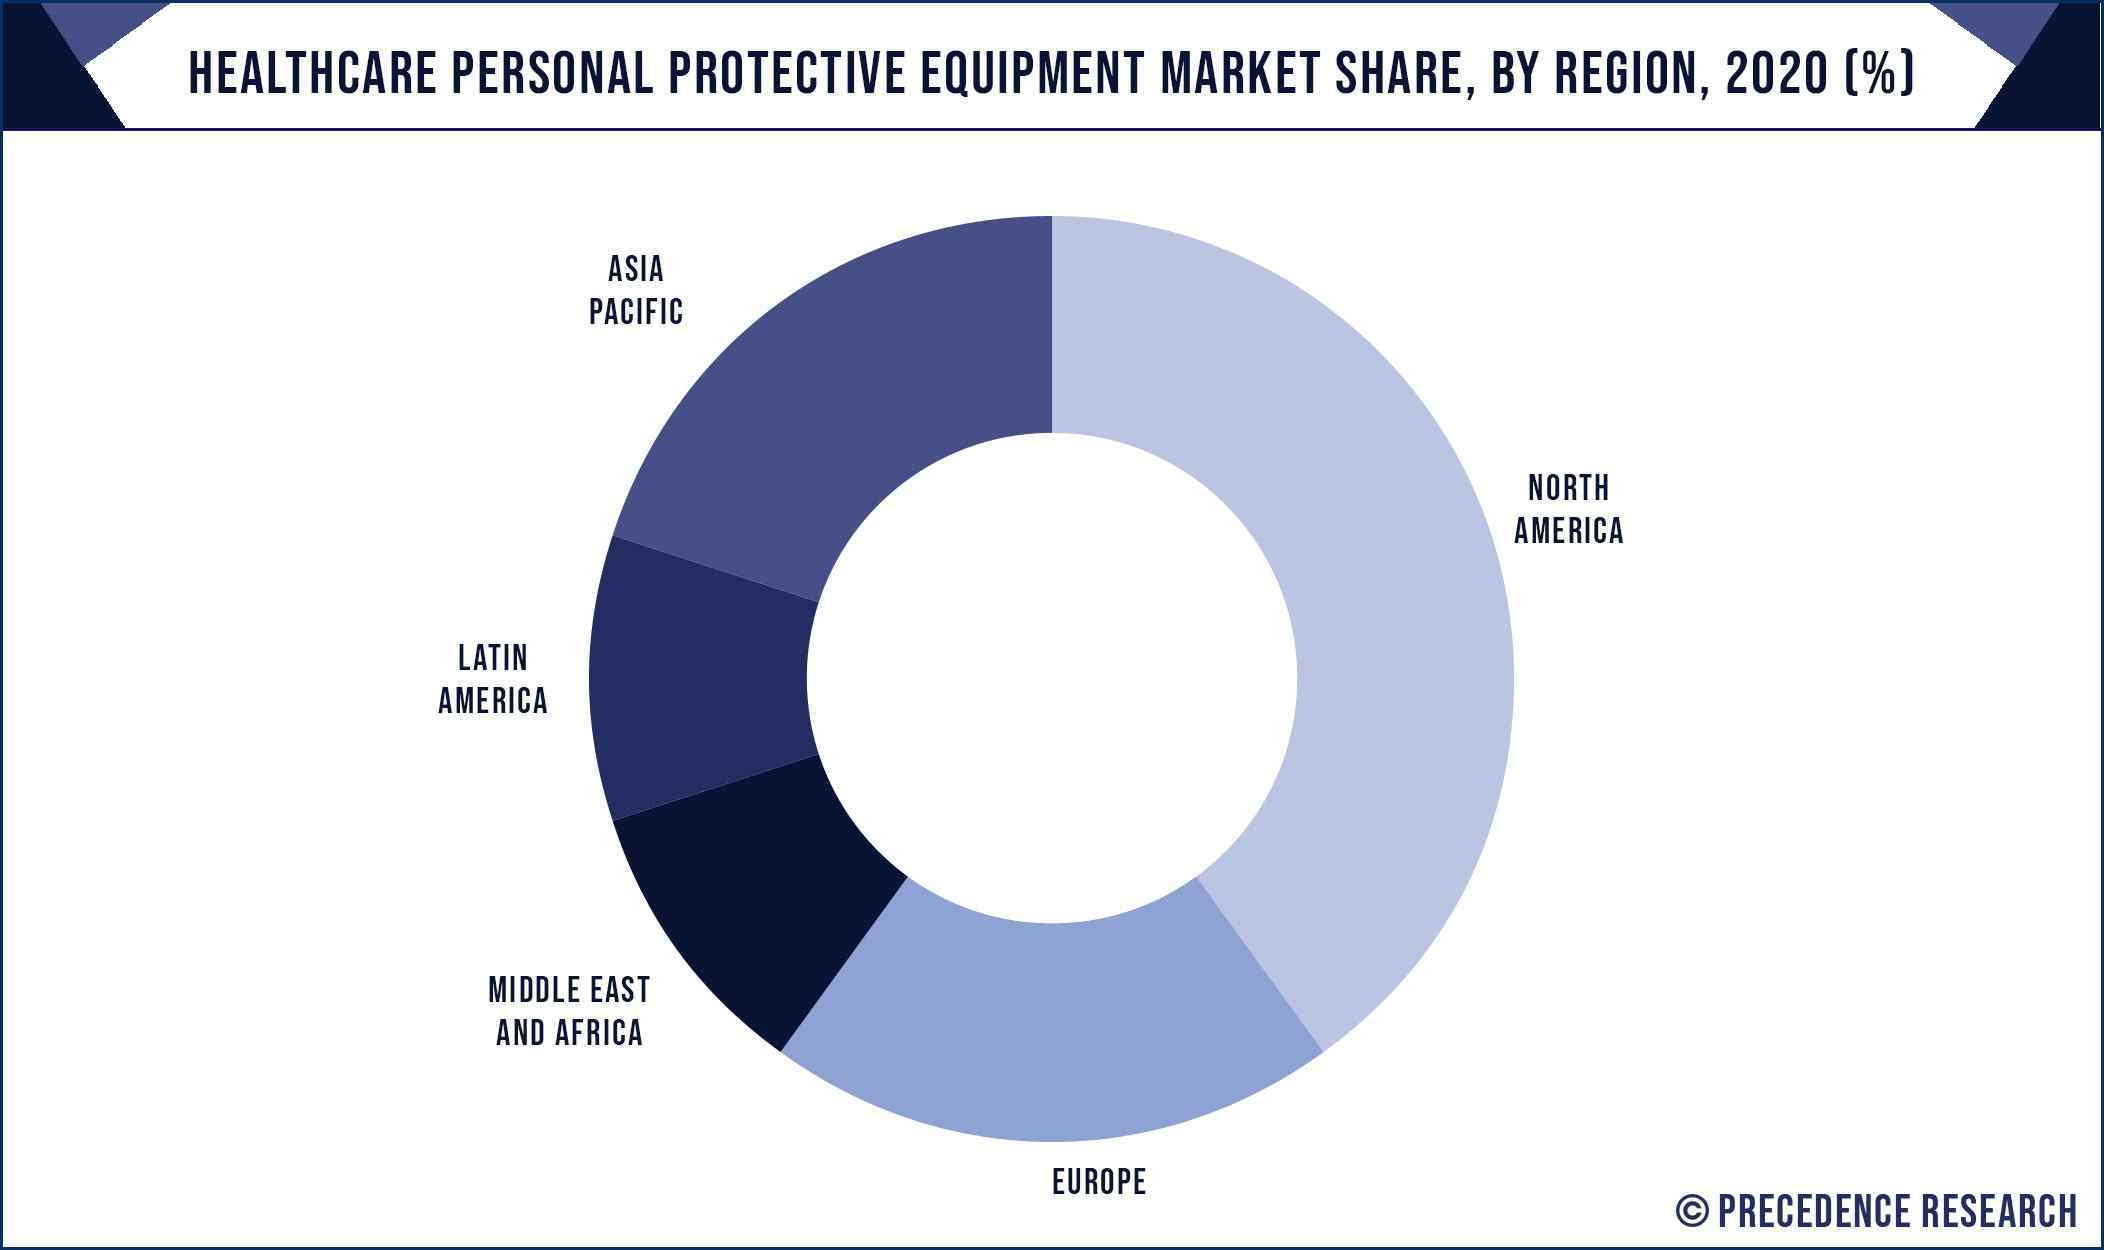 Healthcare Personal Protective Equipment Market Share, By Region, 2020 (%)